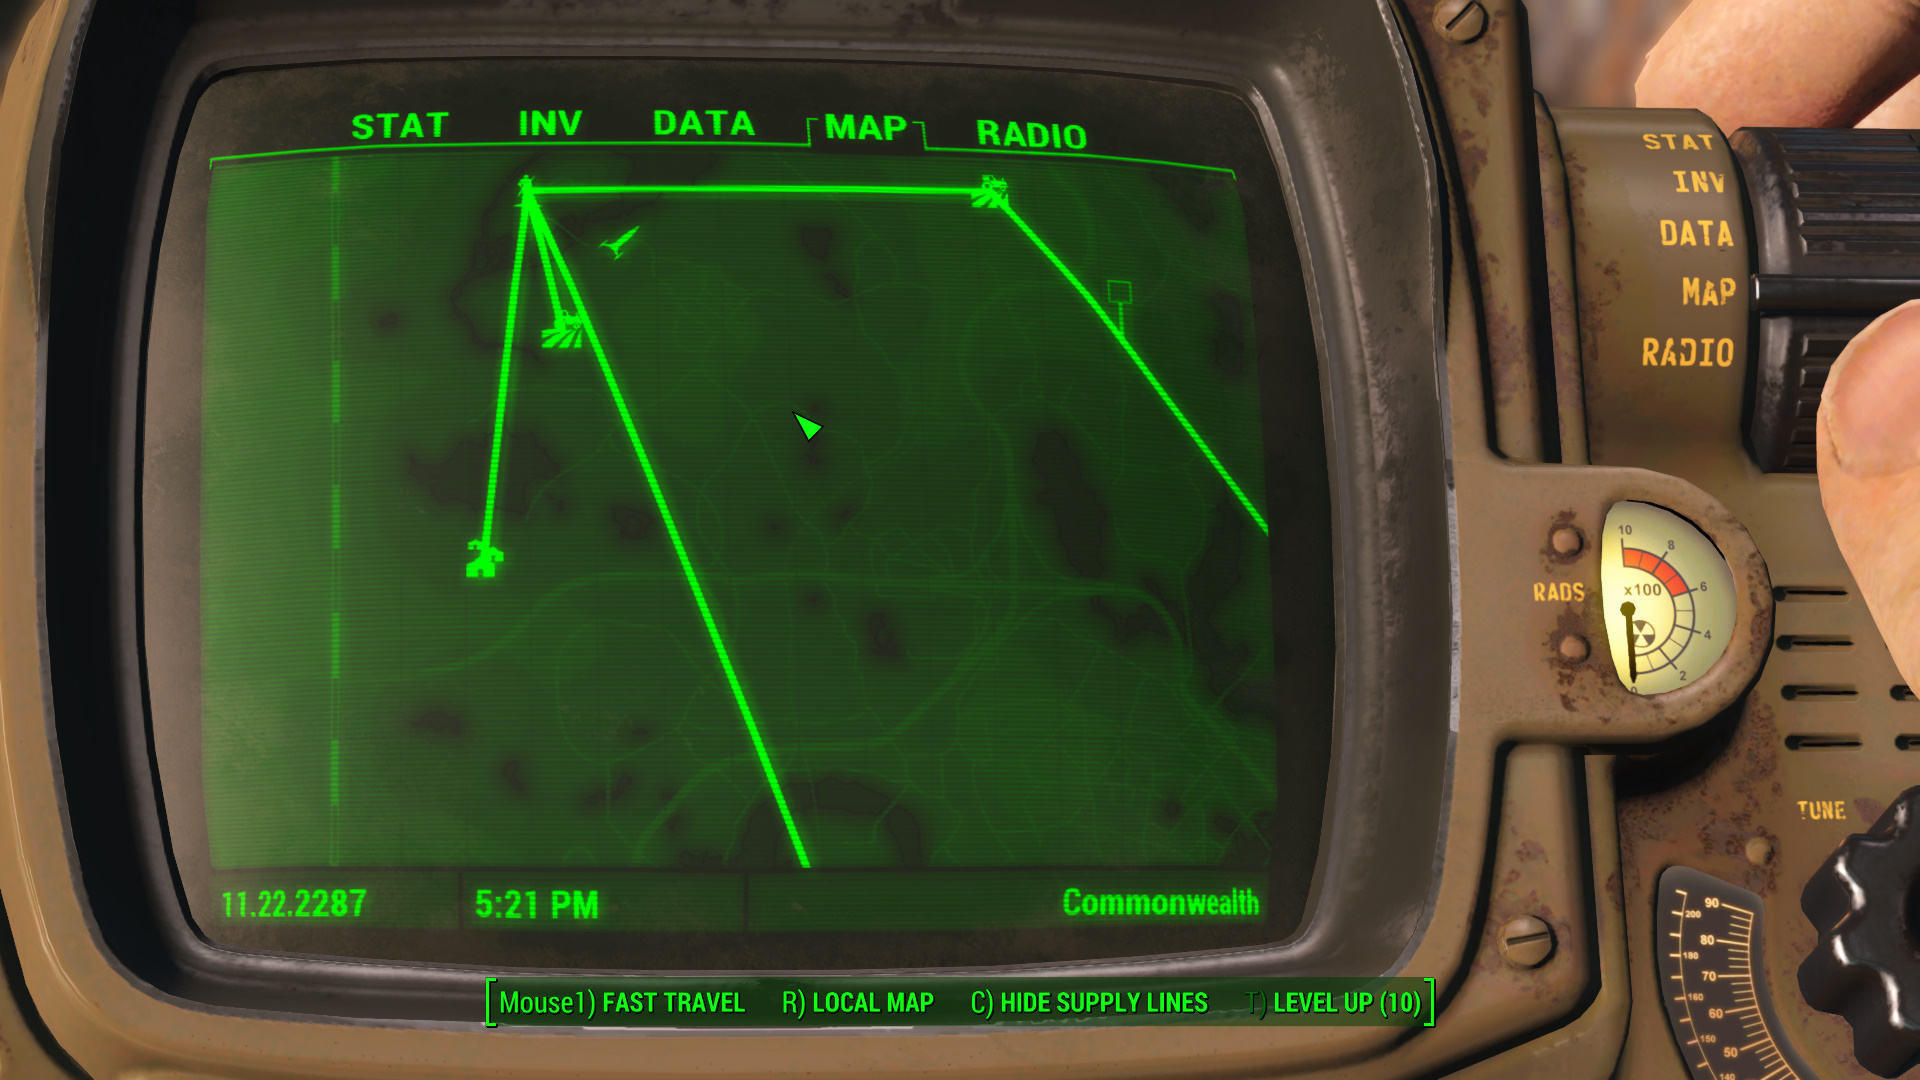 Fantastic How To Start Supply Lines And Move Settlers In Fallout 4 Unemploymentrelief Wooden Chair Designs For Living Room Unemploymentrelieforg